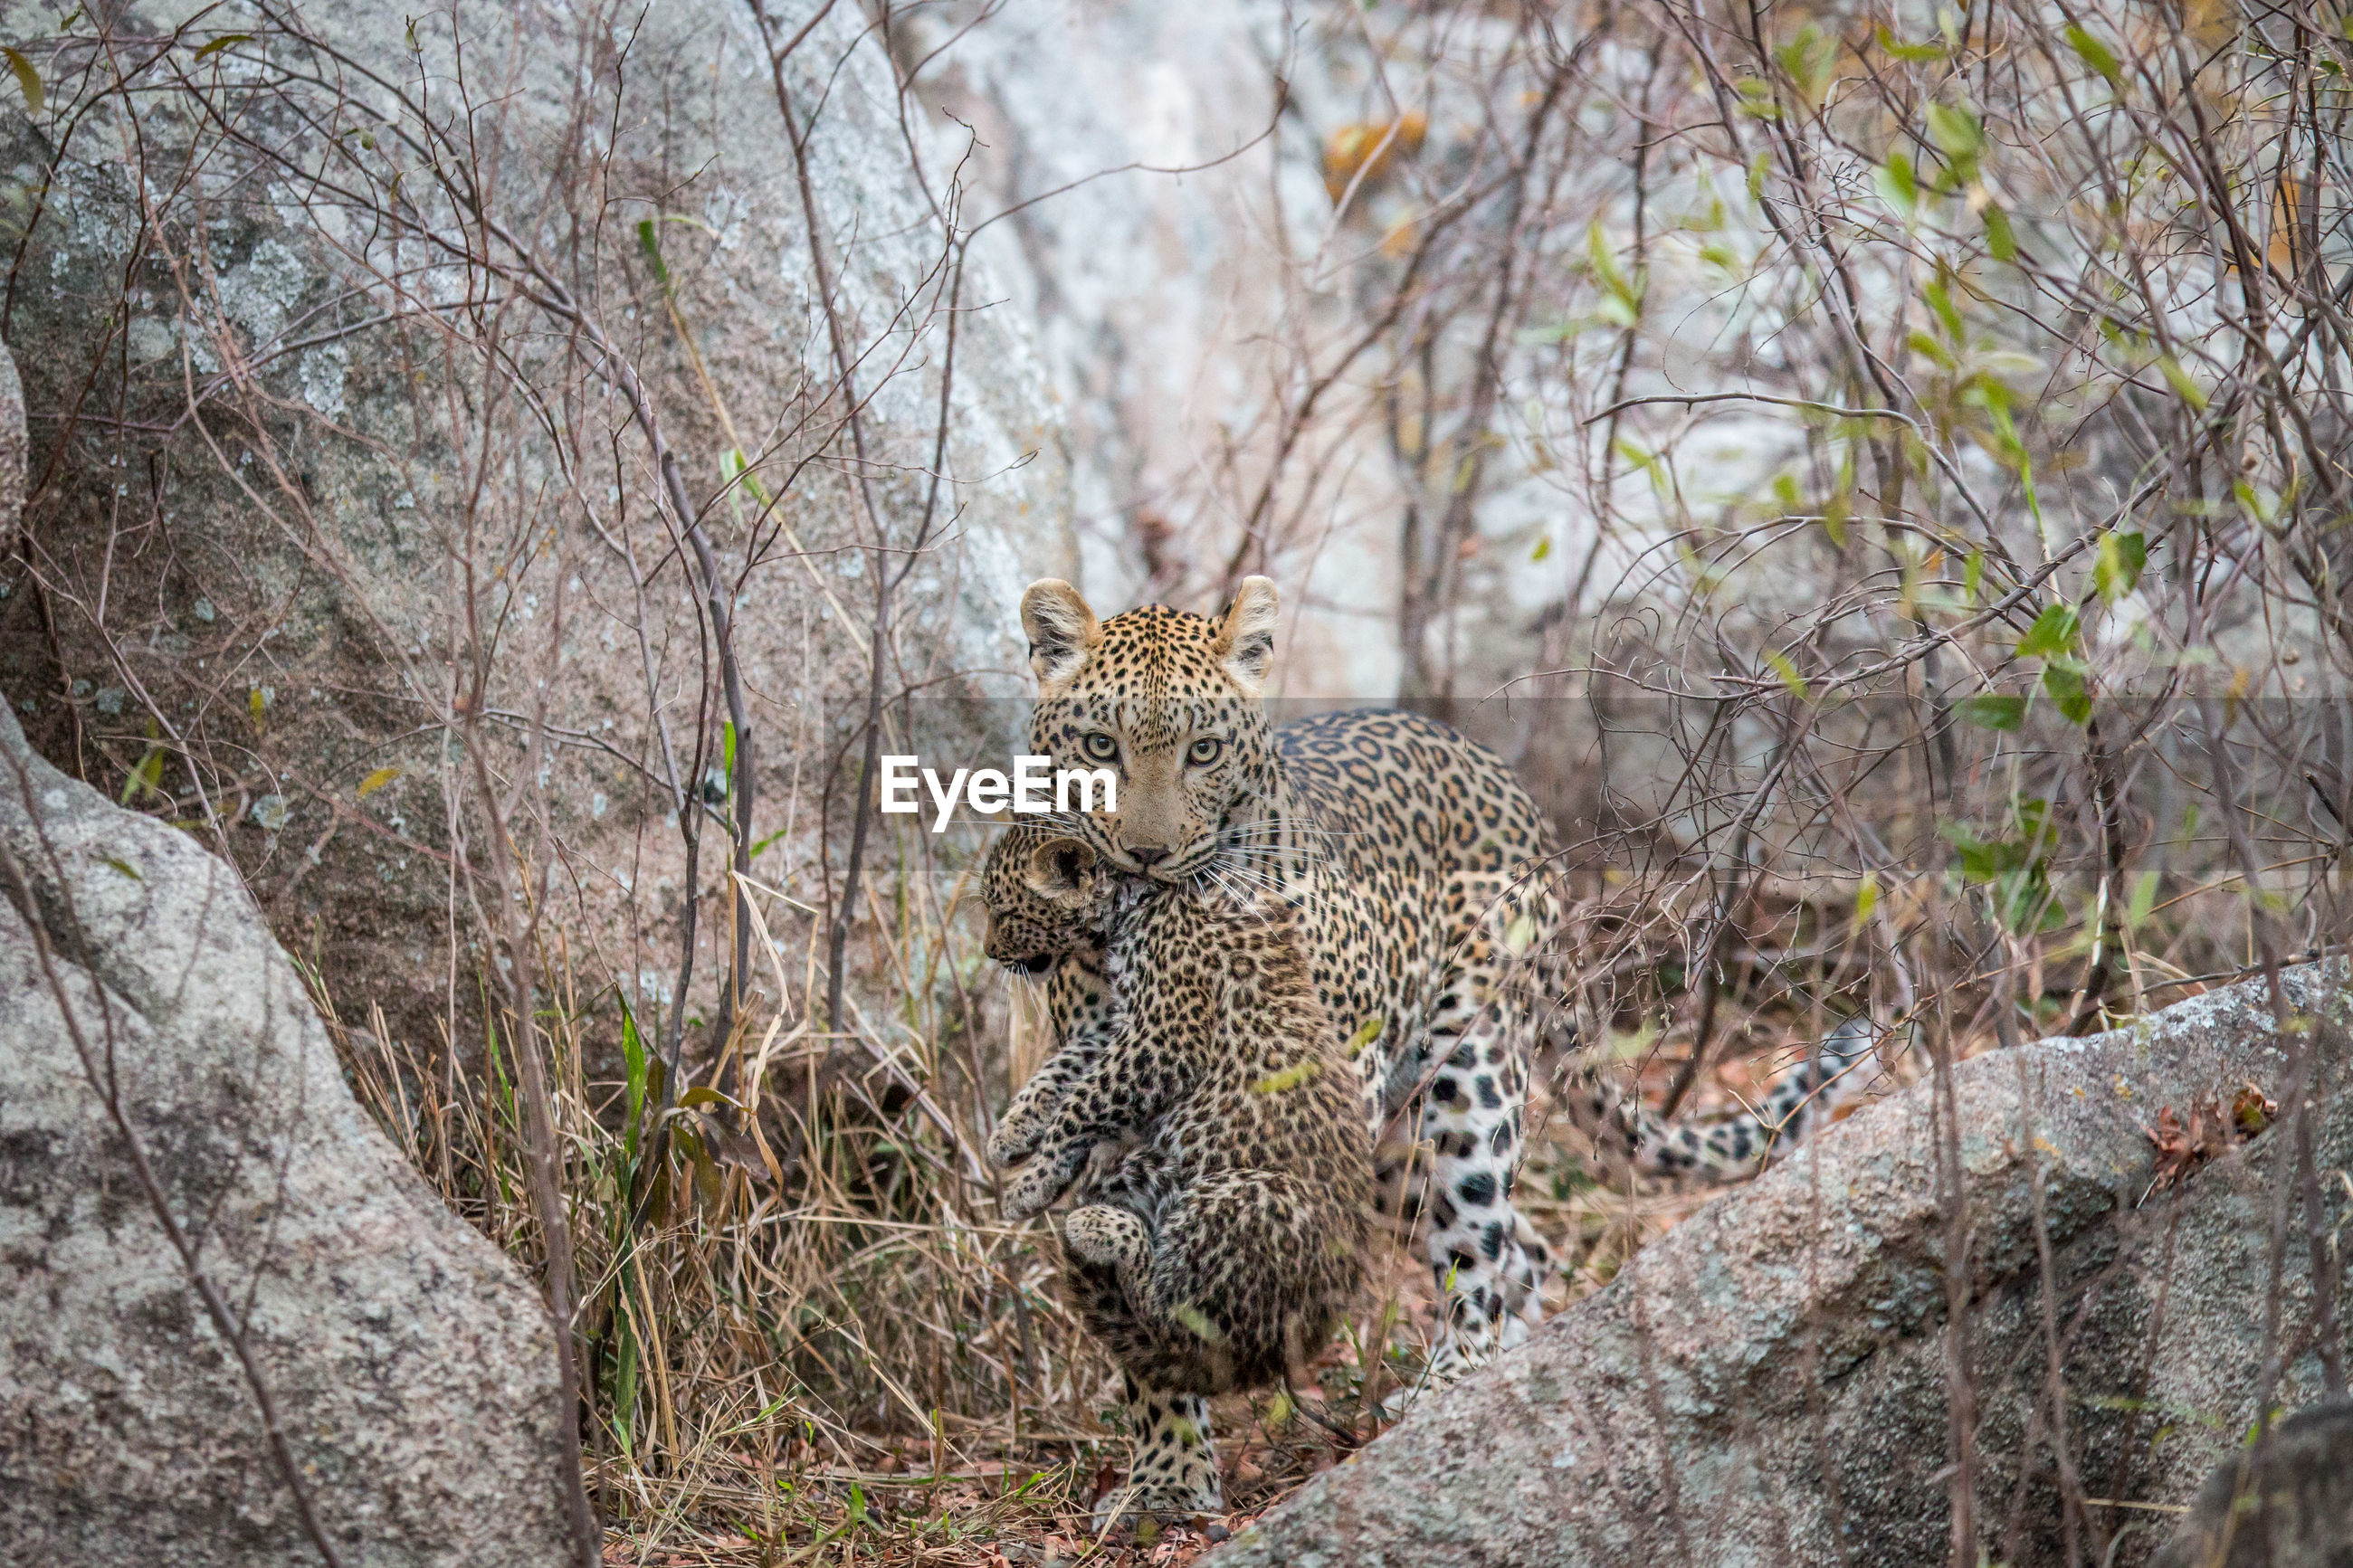 Leopard carrying cub in forest